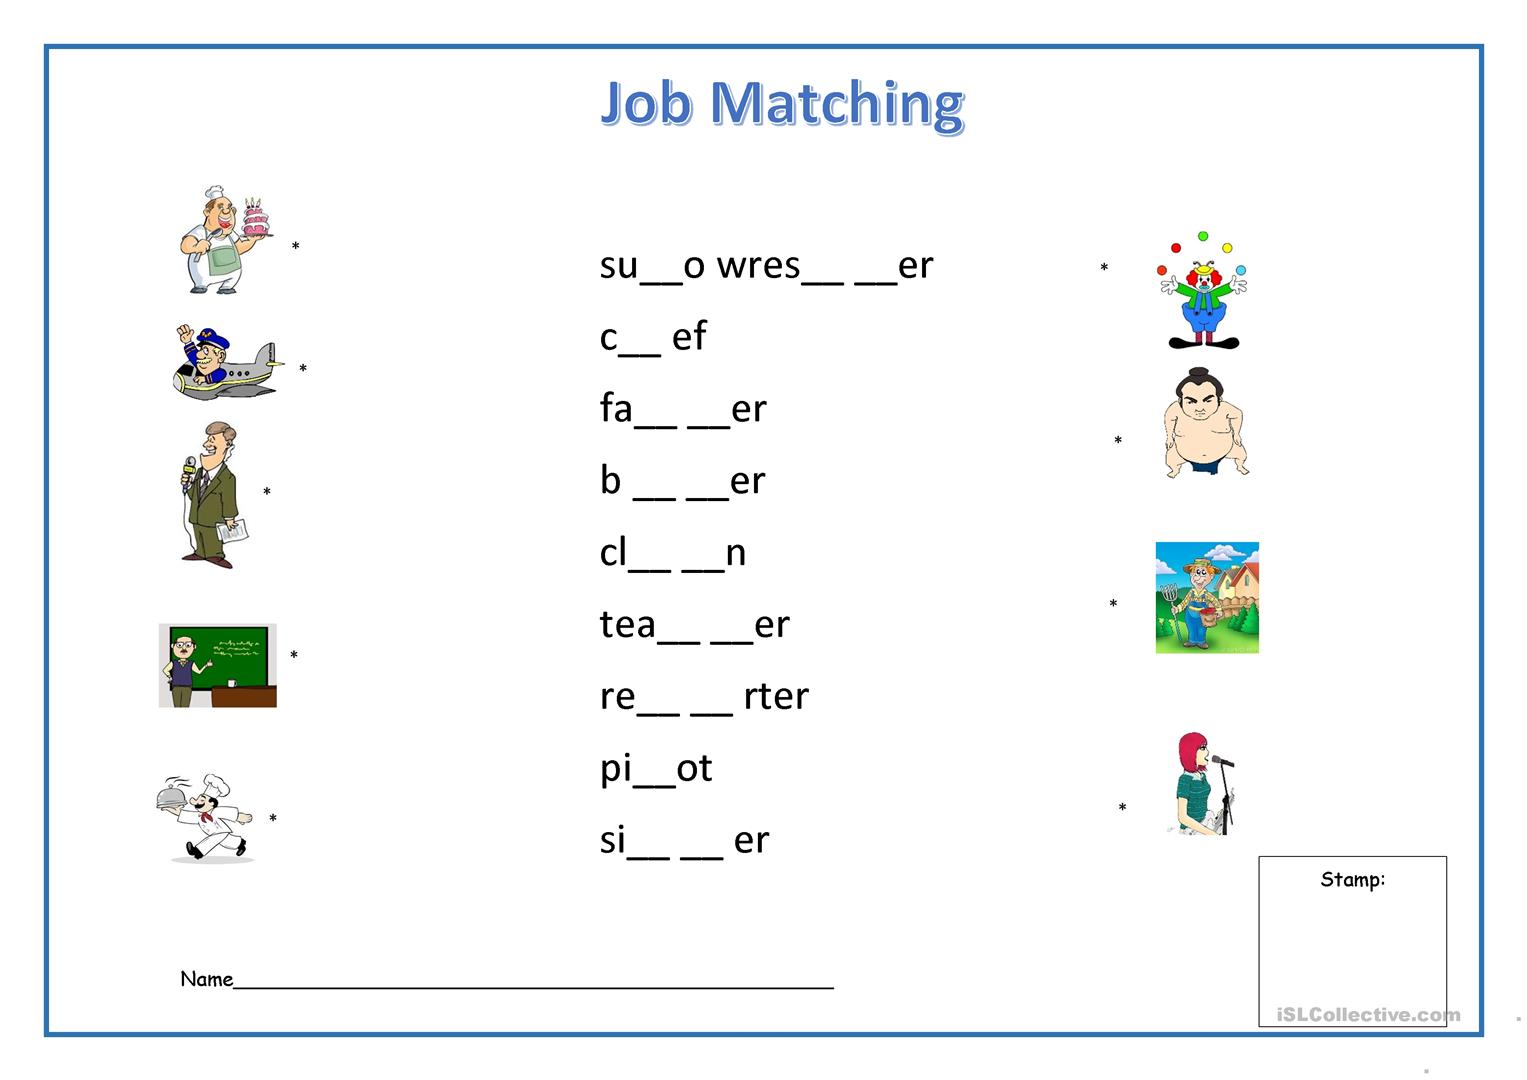 Job Matching Worksheet